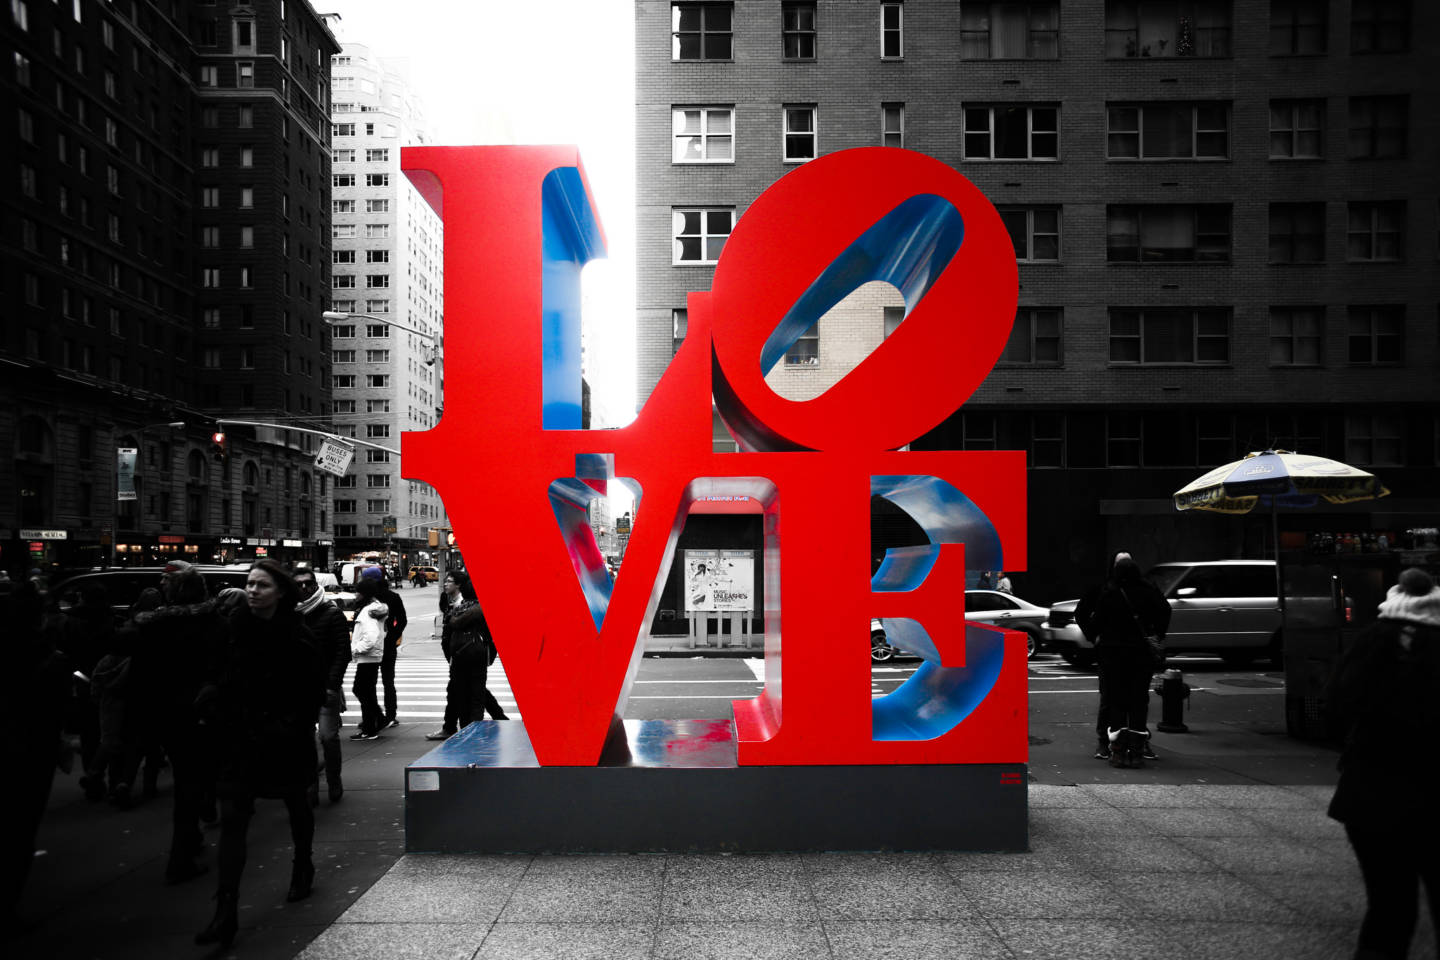 Defining Love: An Assignment That Can Reveal Students' Perspective on Life